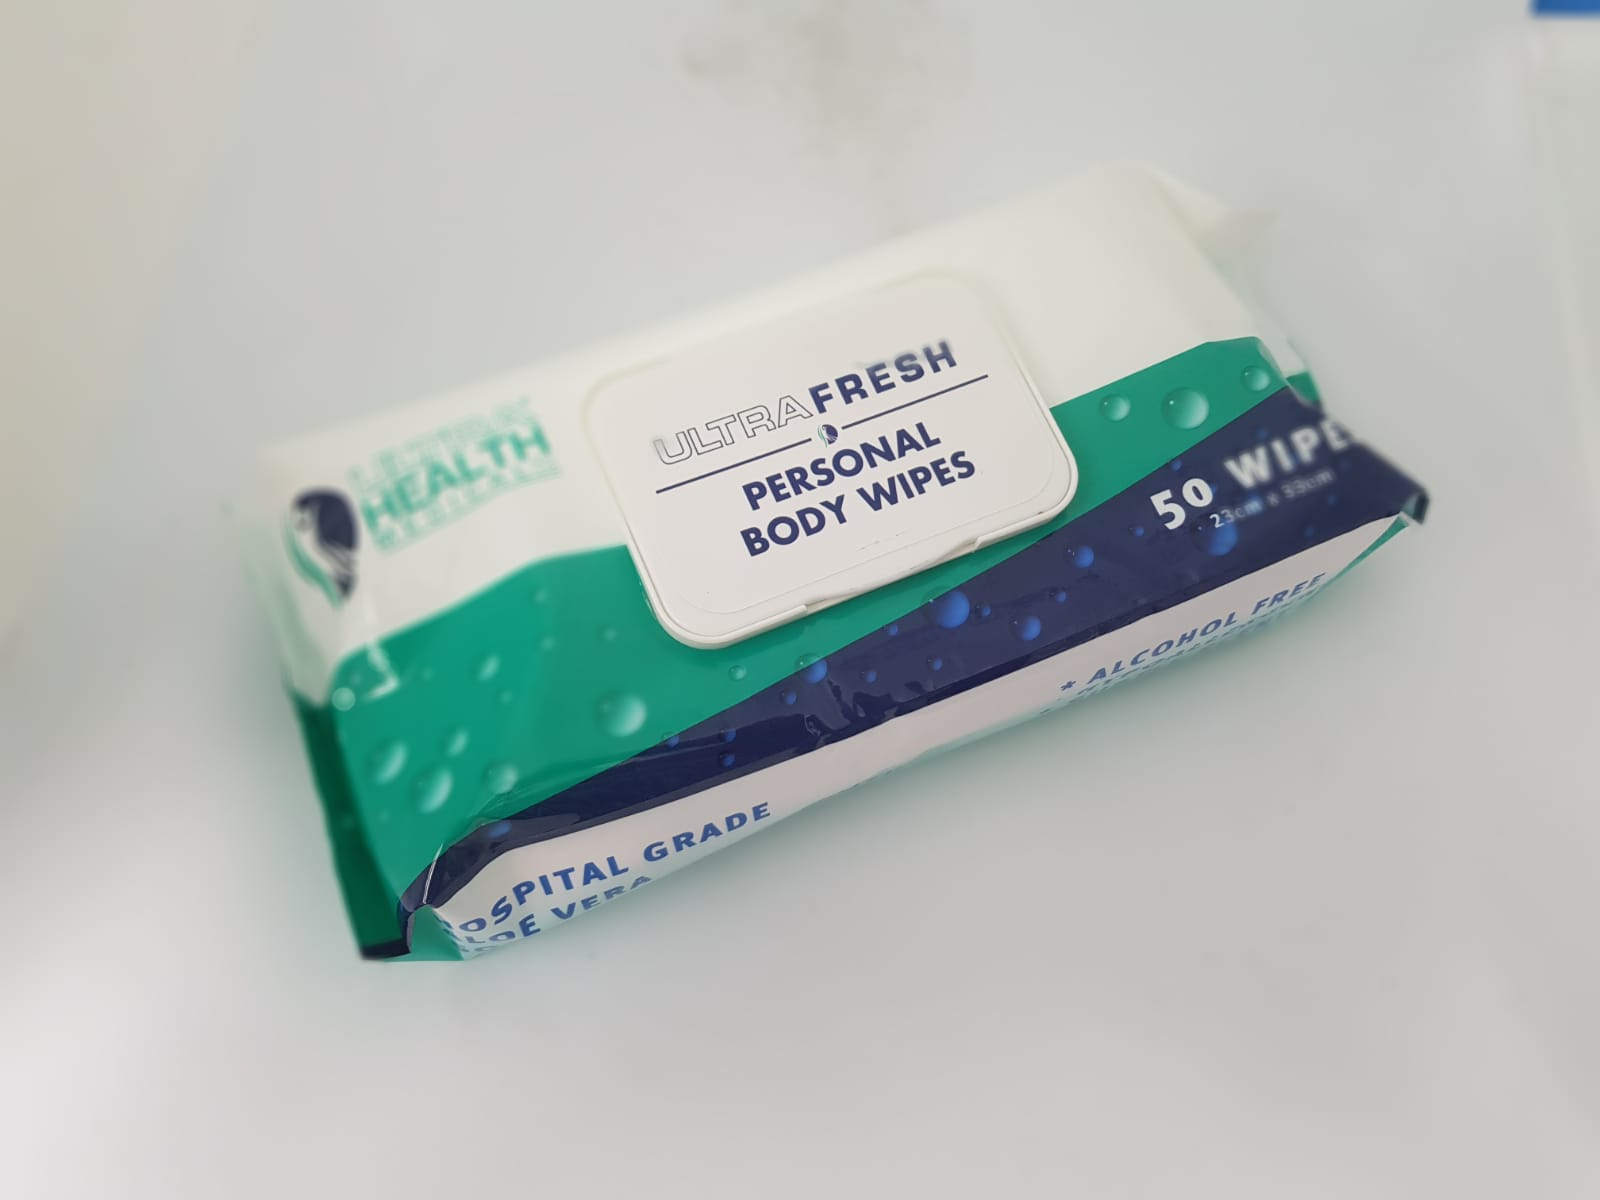 UltraFresh Personal Body Wipes, Pkt 50